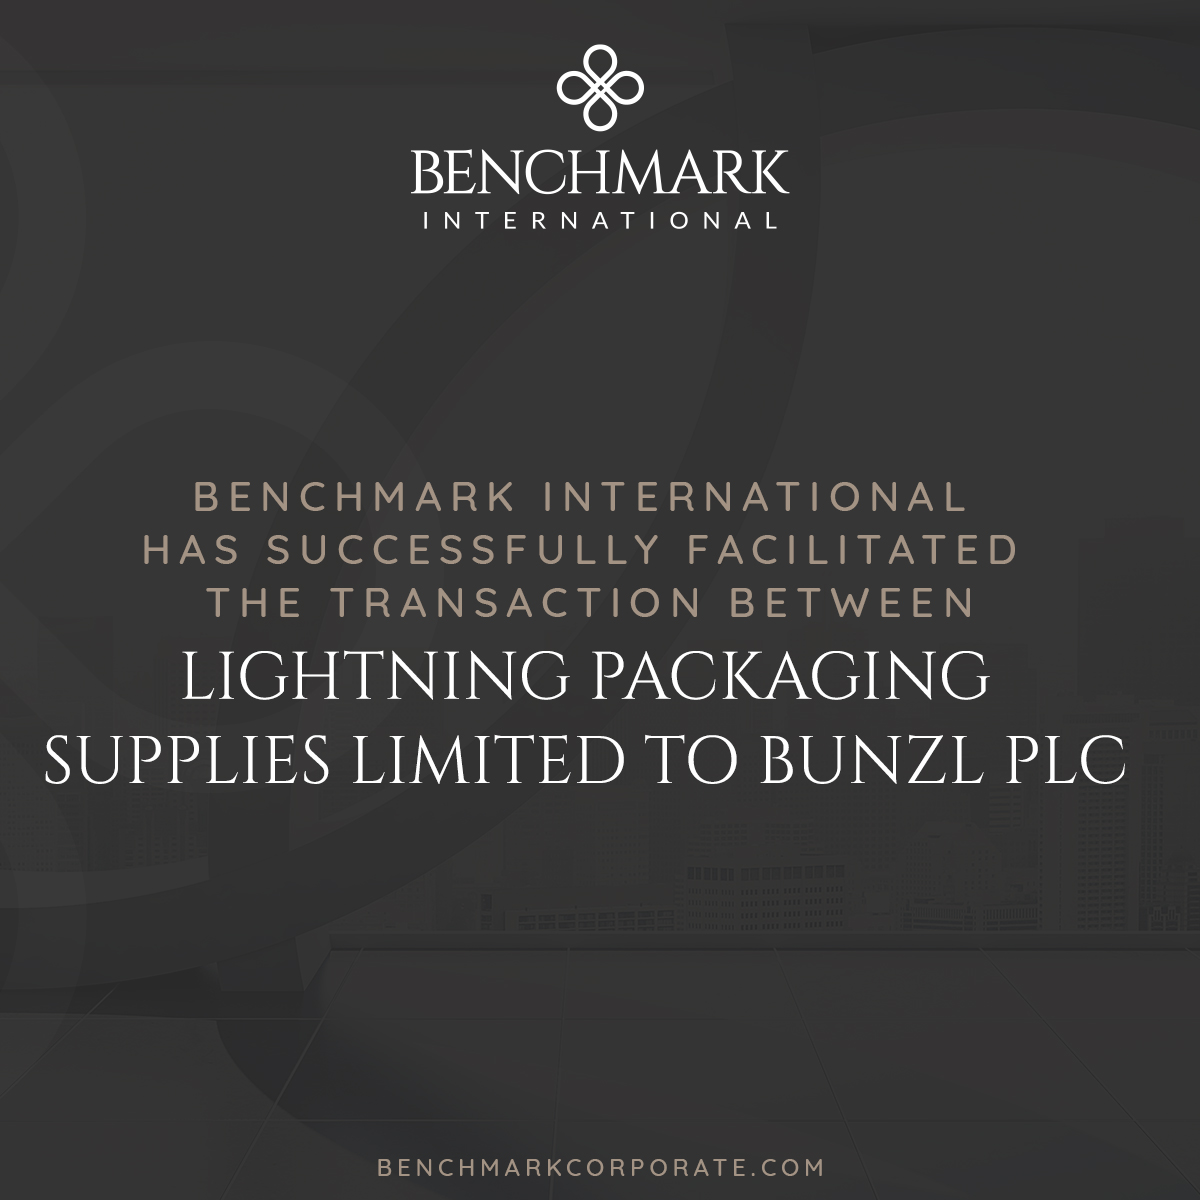 Lightning Packaging Acquired by Bunzl